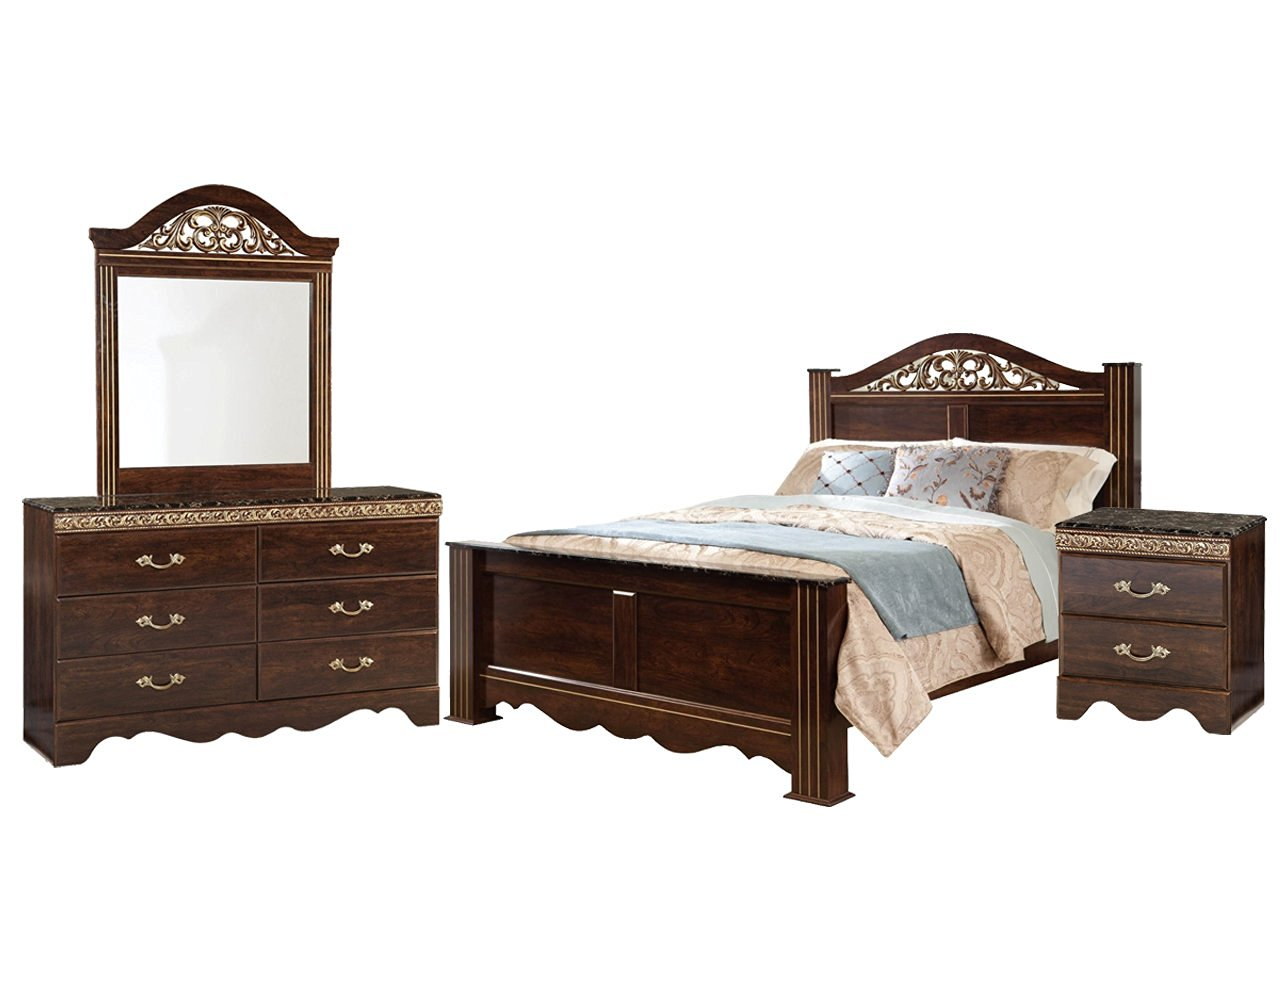 Get Quotations · Standard Odessa Bedroom Set With King Bed, Nightstand,  Dresser, Mirror And Chest